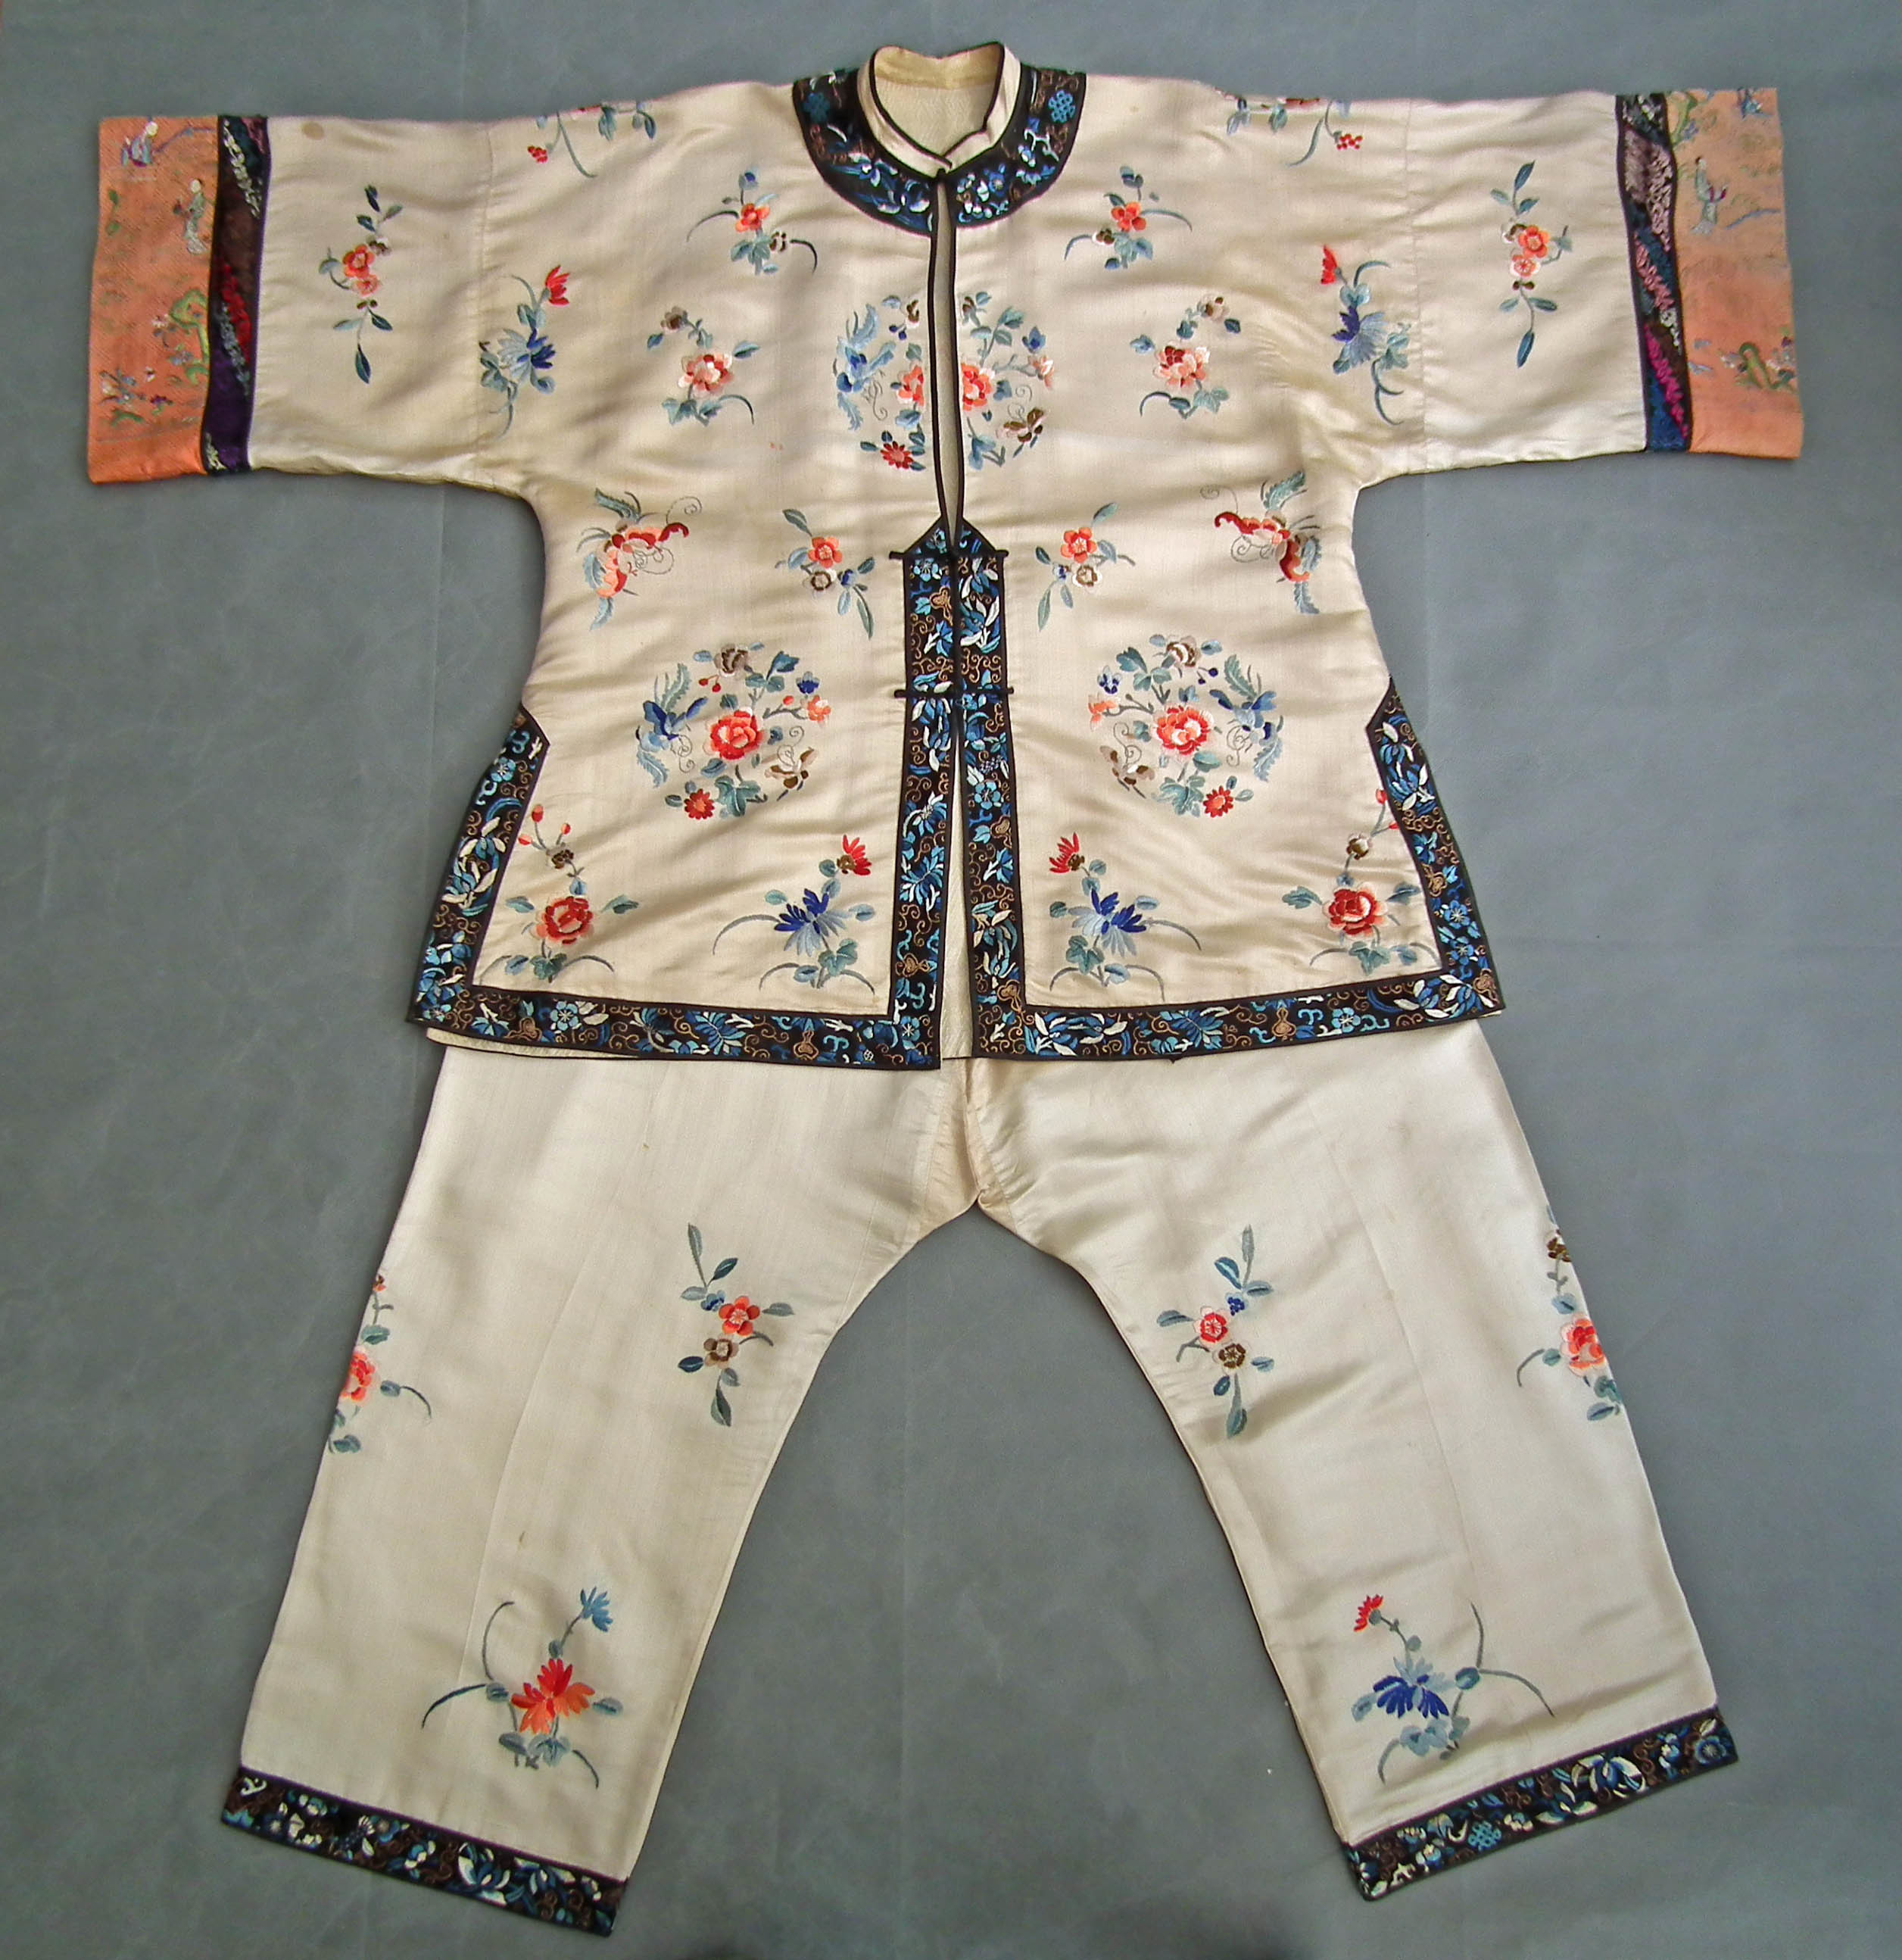 SOLD Antique Chinese 19th century Qing Dynasty Women's Silk Costume Robe - Coat & Trousers